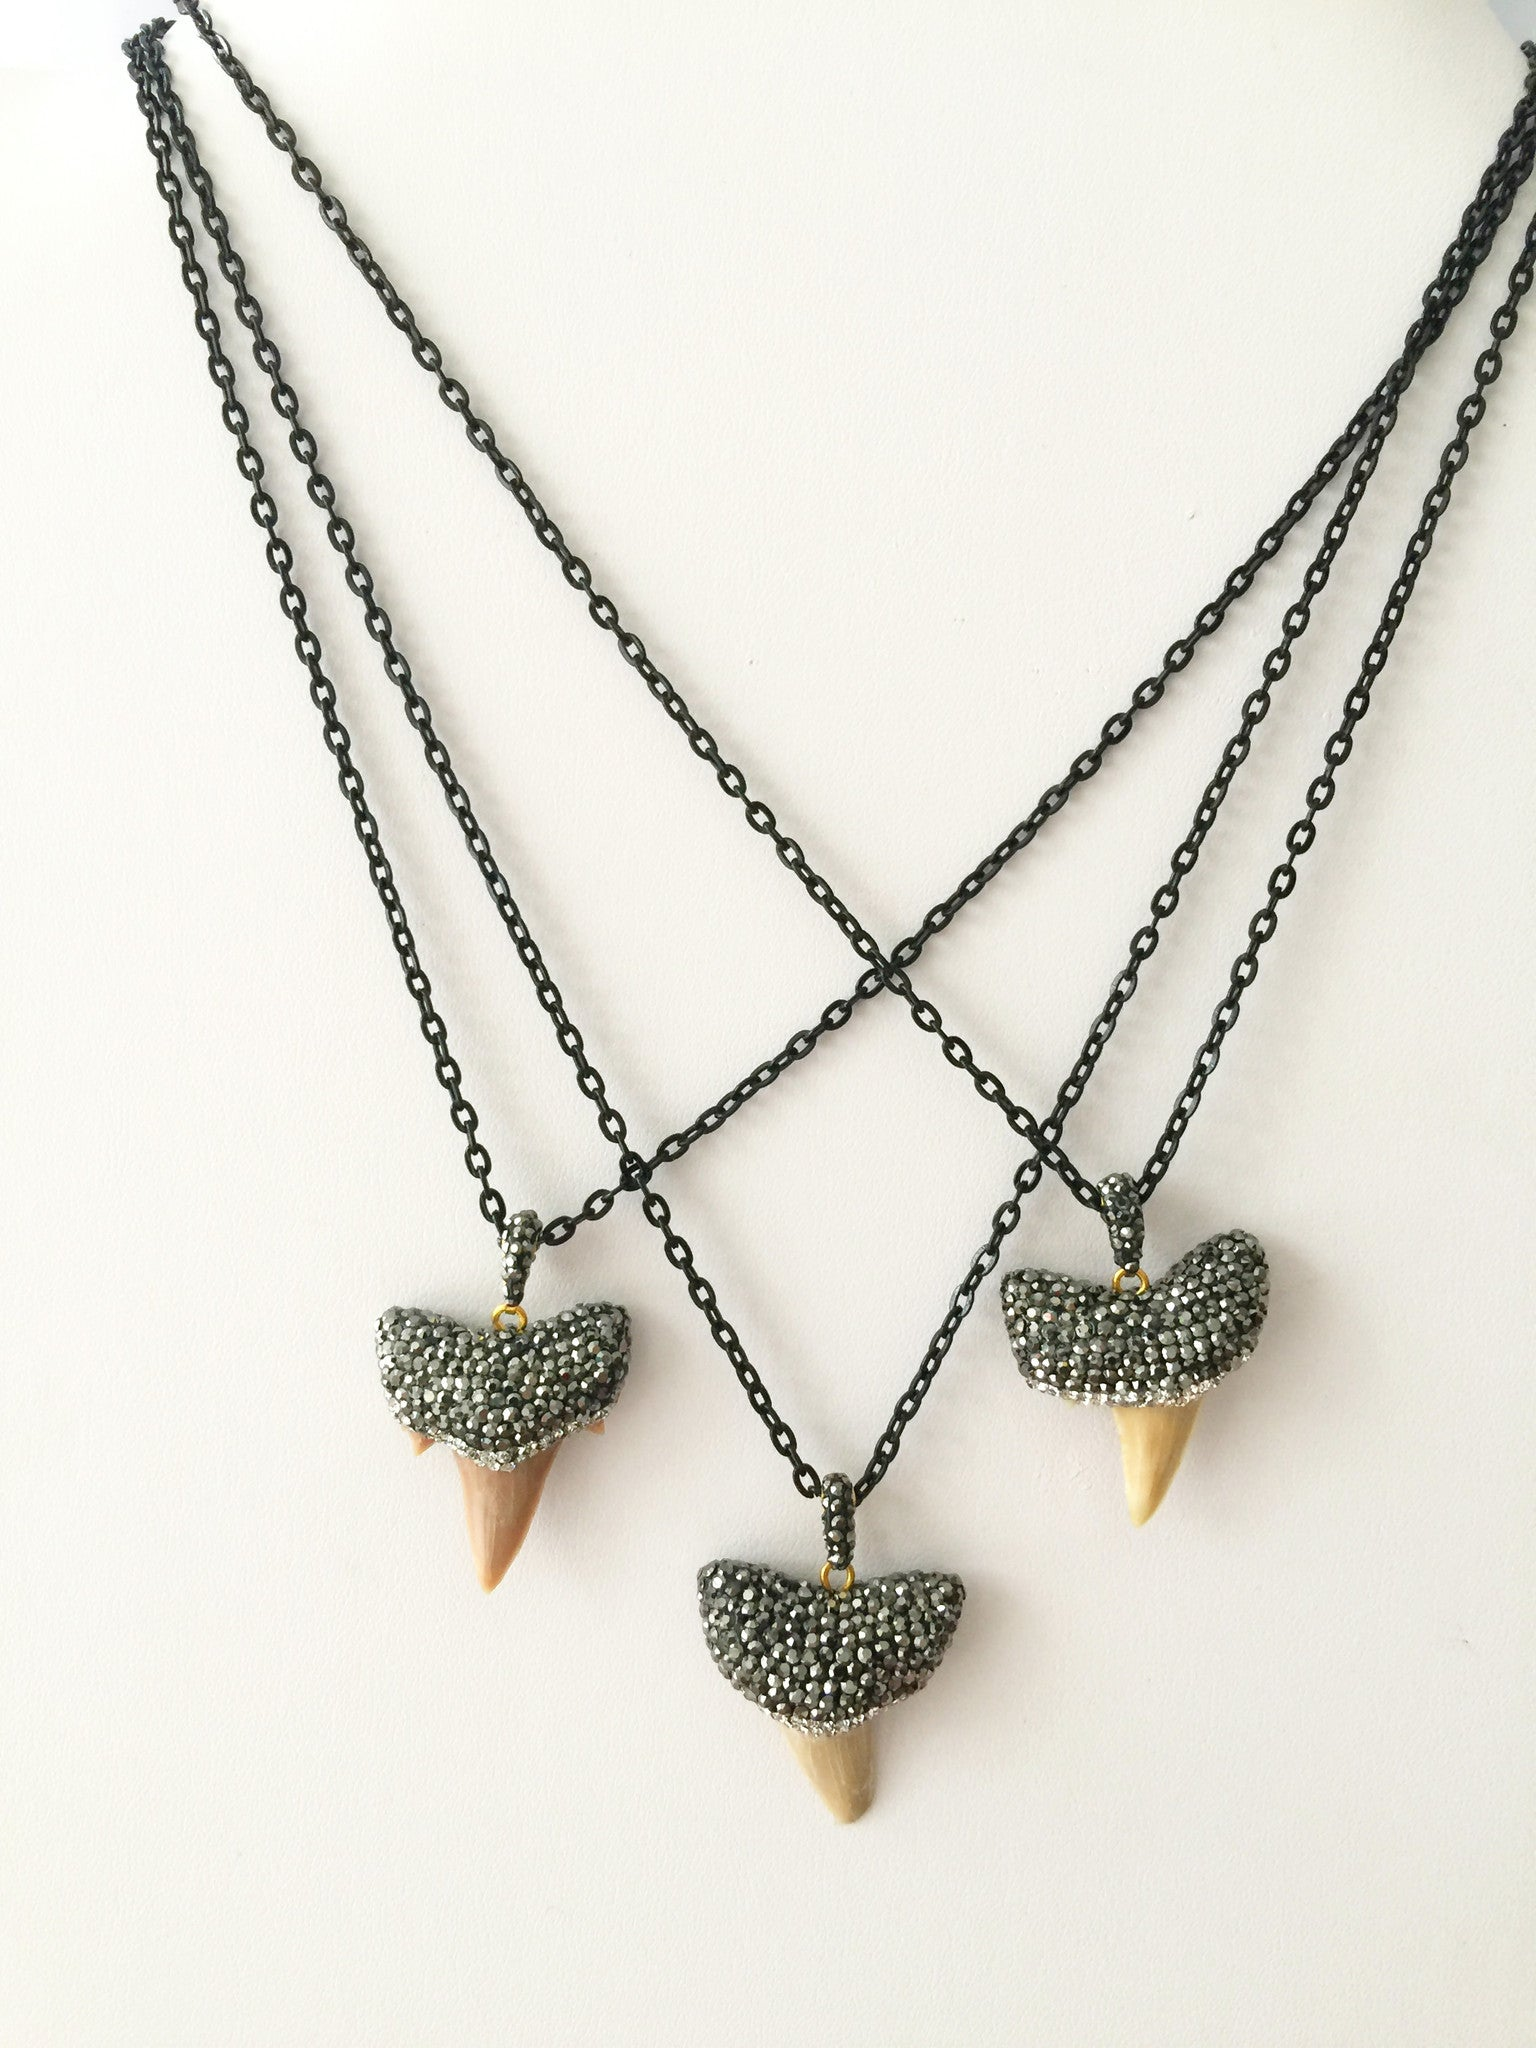 Pavé Sharktooth Necklace